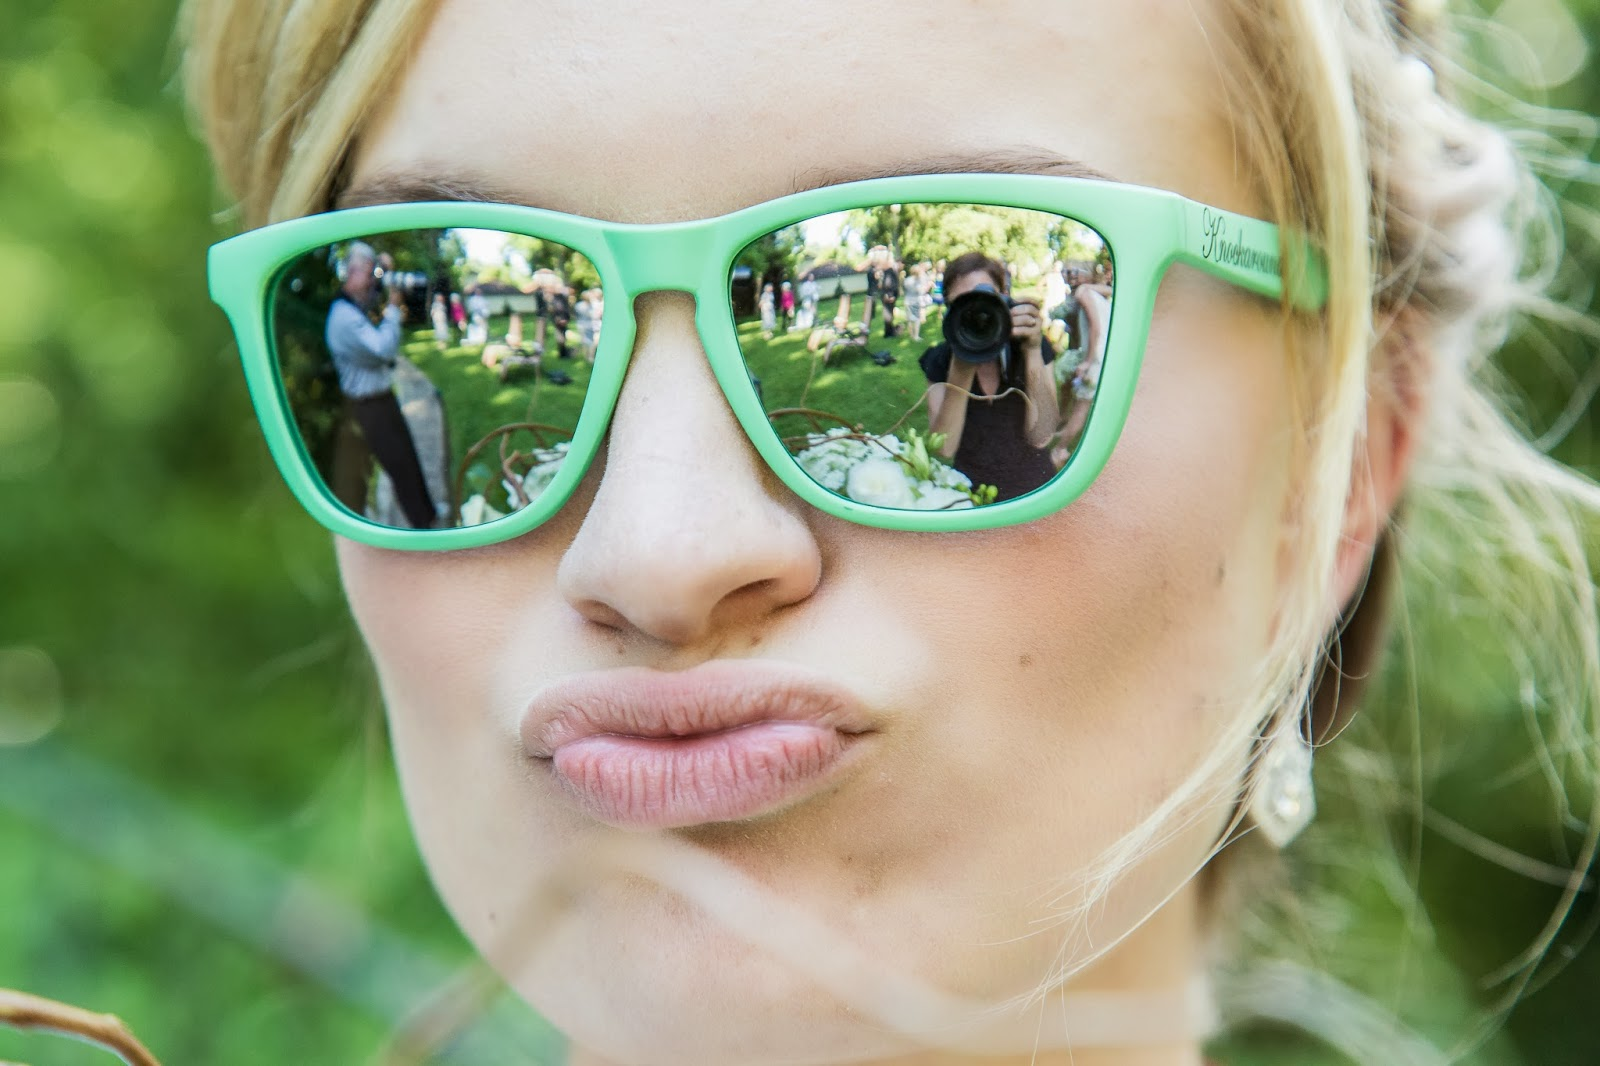 bride wearing mint green sunglasses, reflection of photographers in sunglasses